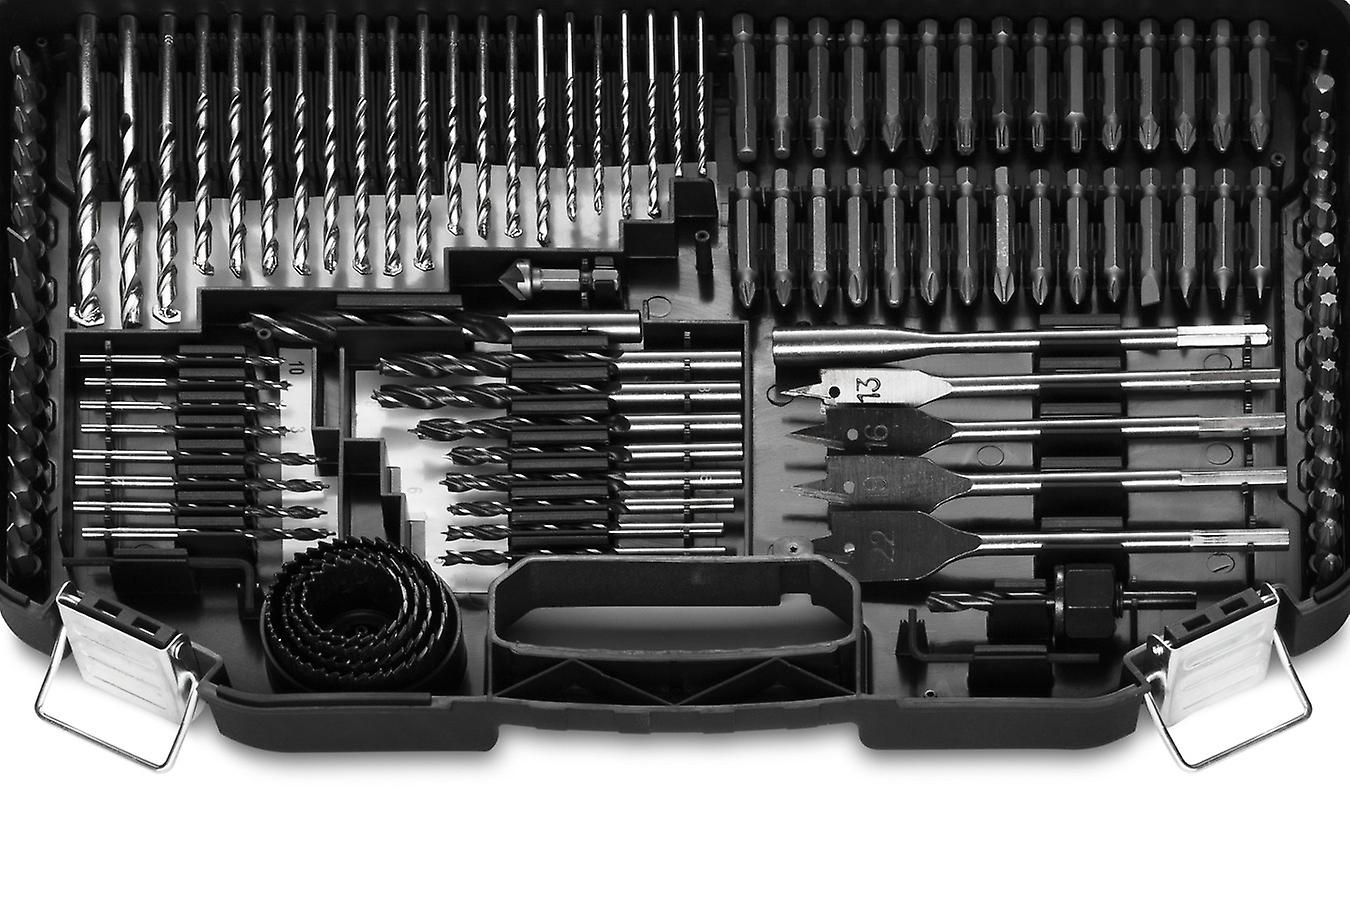 WOLFGANG 246 Parts Drill Bit Set for Cordless Drills, Drill, Bit Set Bit Holder Magnetic, Twist, Milling, Wood, Stone Drill, Hole Saw, in Case